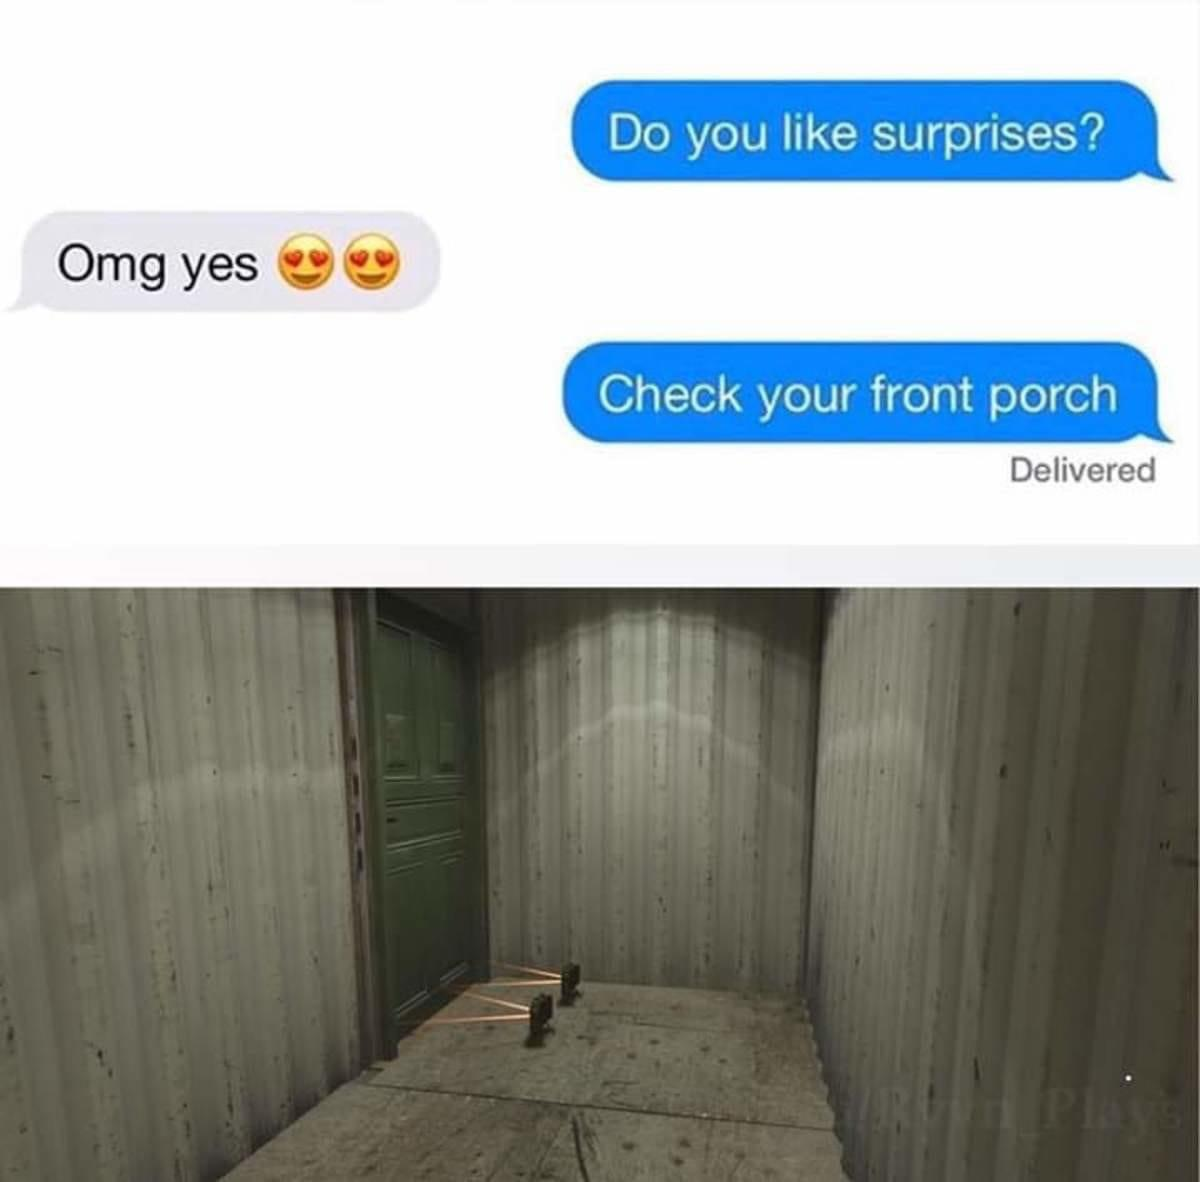 After My Wifes Valentines Day Package Was Stolen Off Our Front